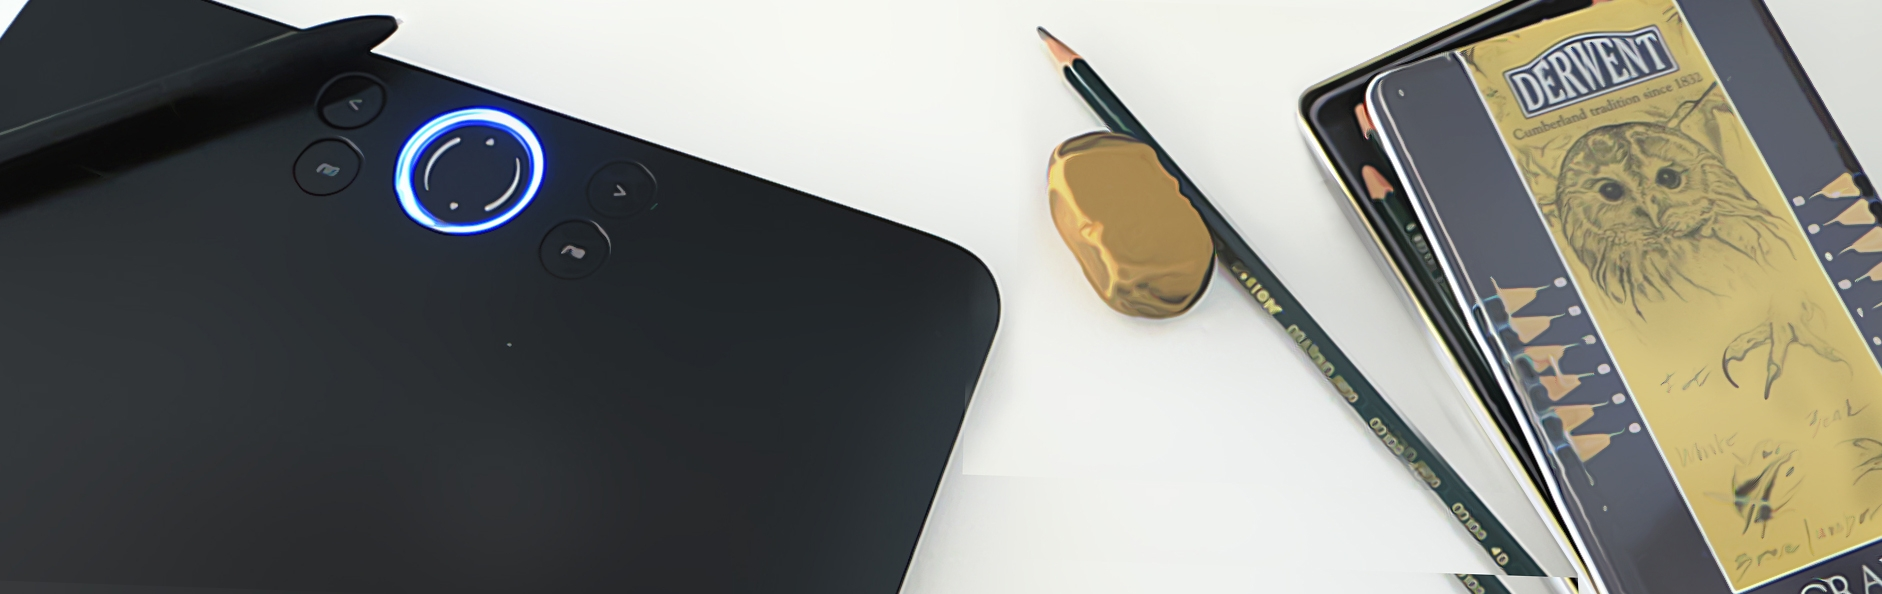 computer pen, tablet, pencil, eraser, and sketching pencils in a tin container photograph